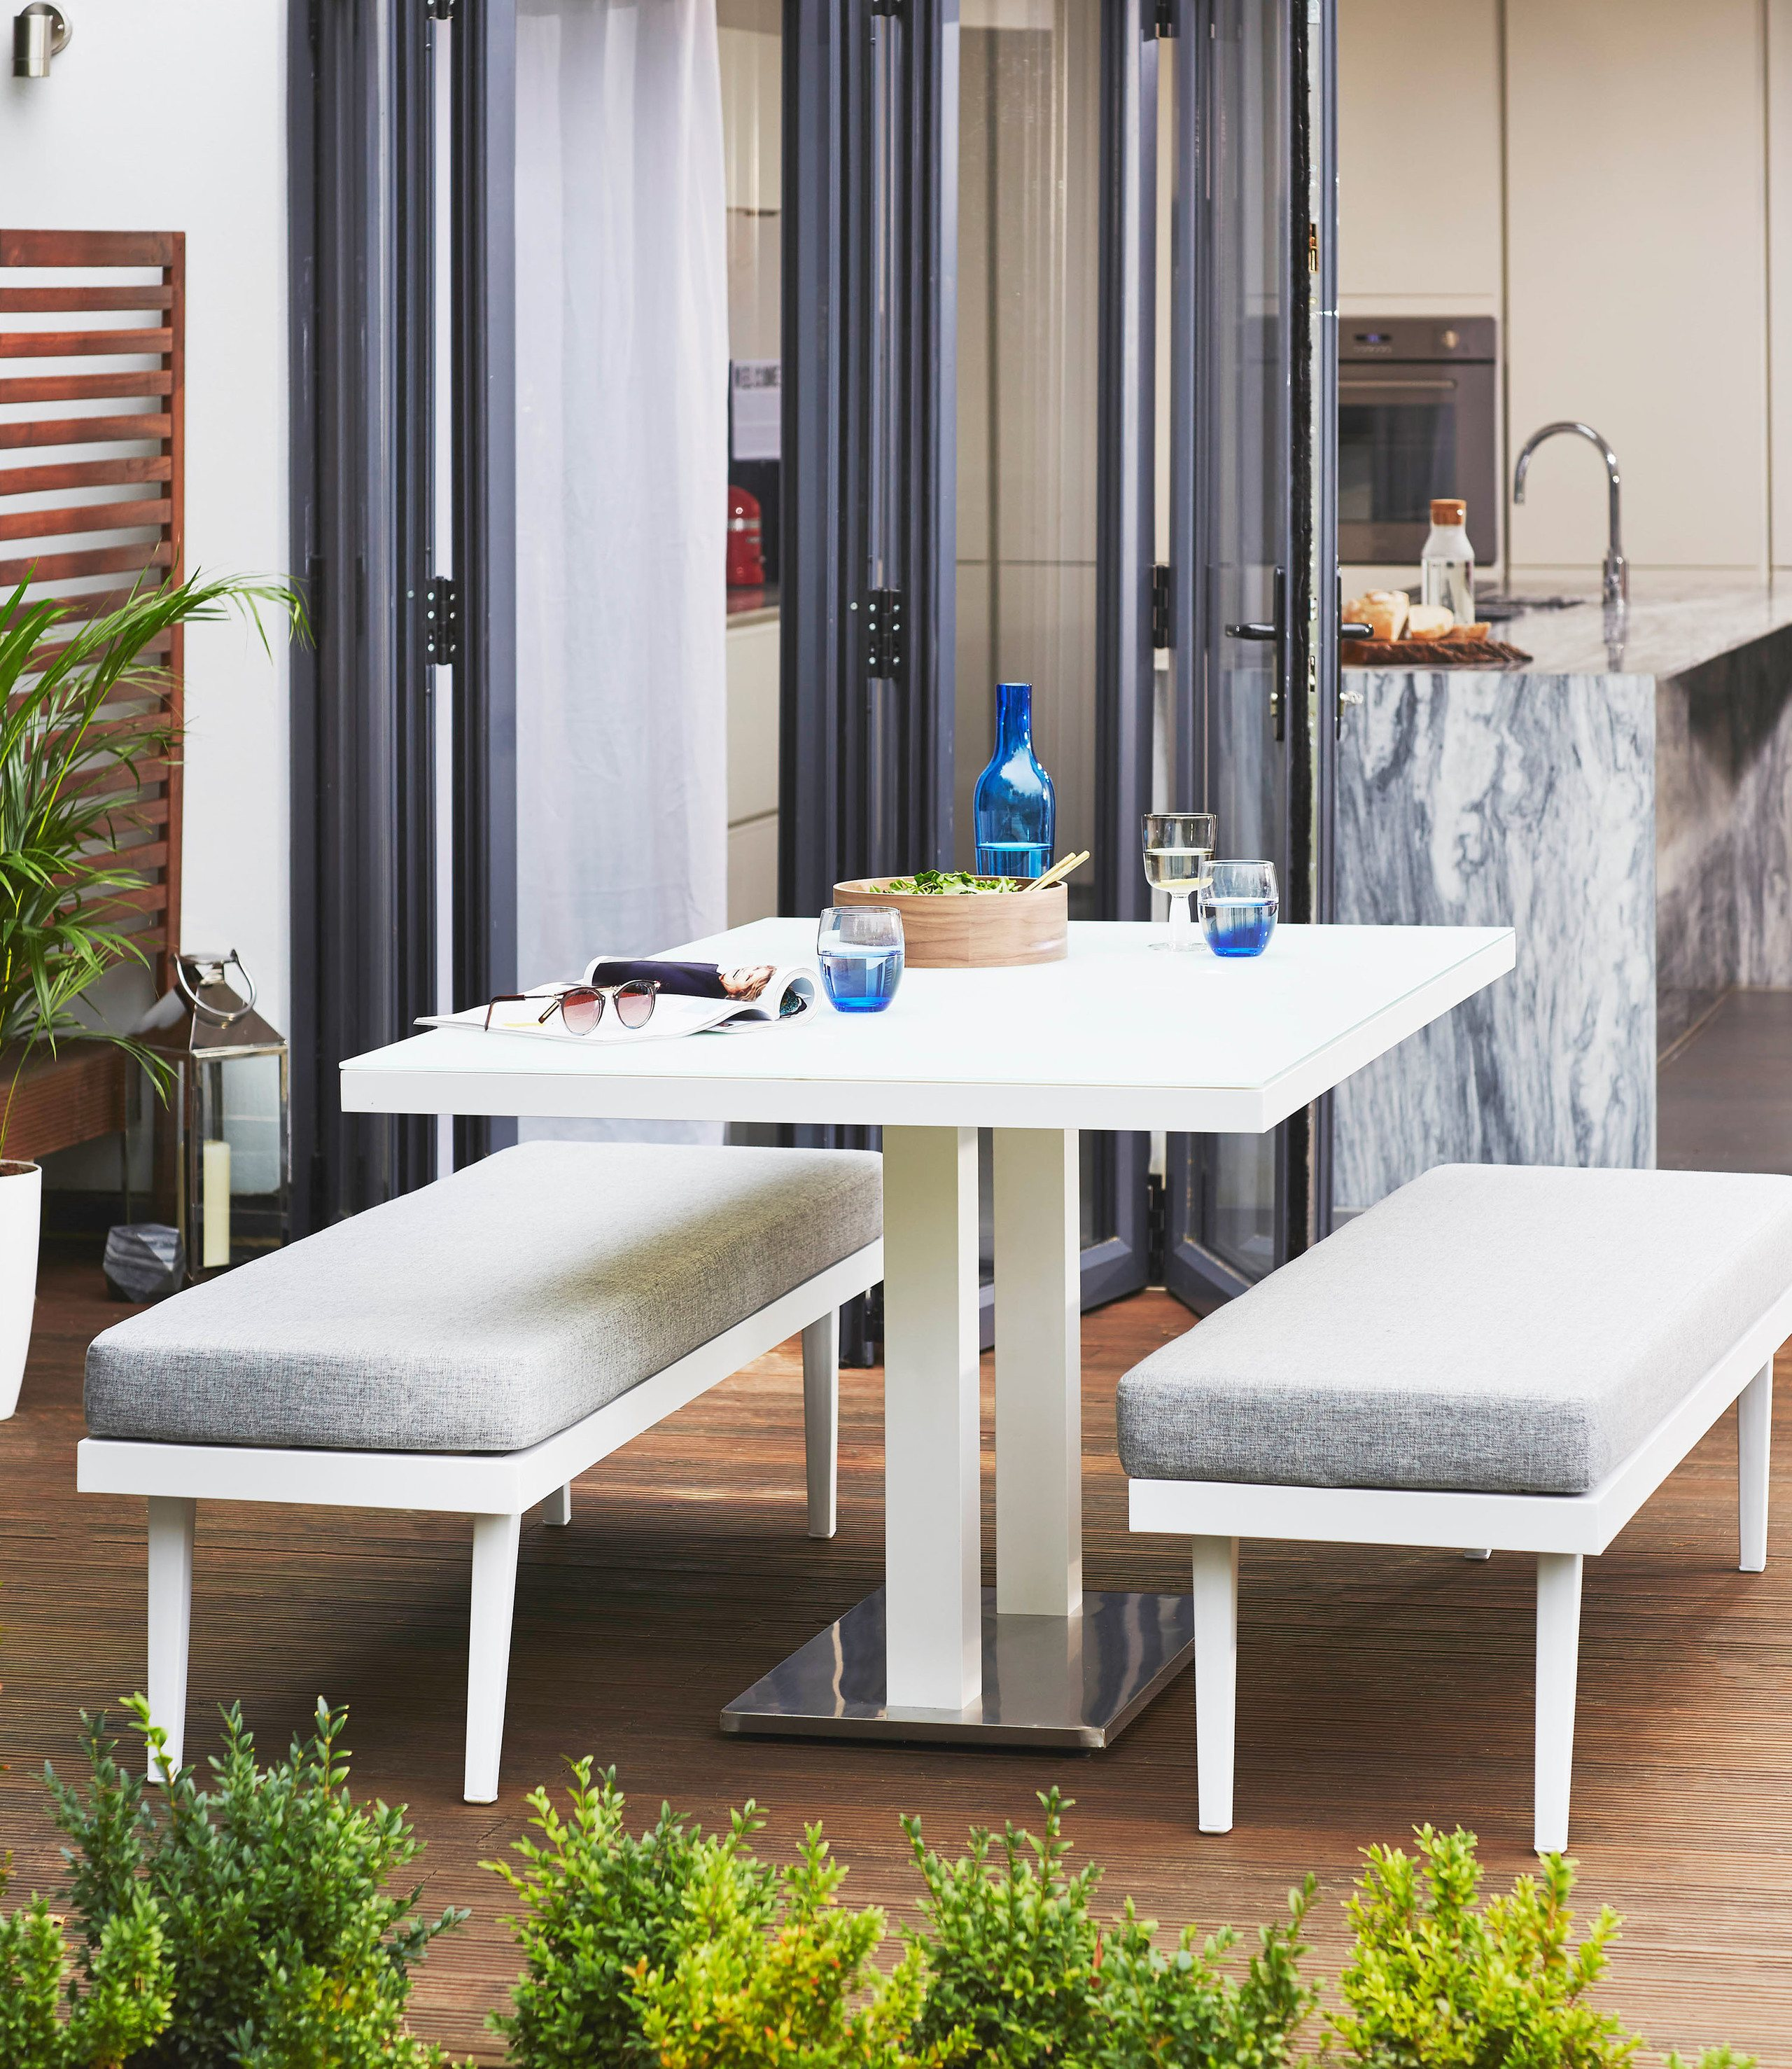 Palermo White 6 Seater Pedestal Outdoor Dining Table & Palermo White 3 Seater Garden Bench